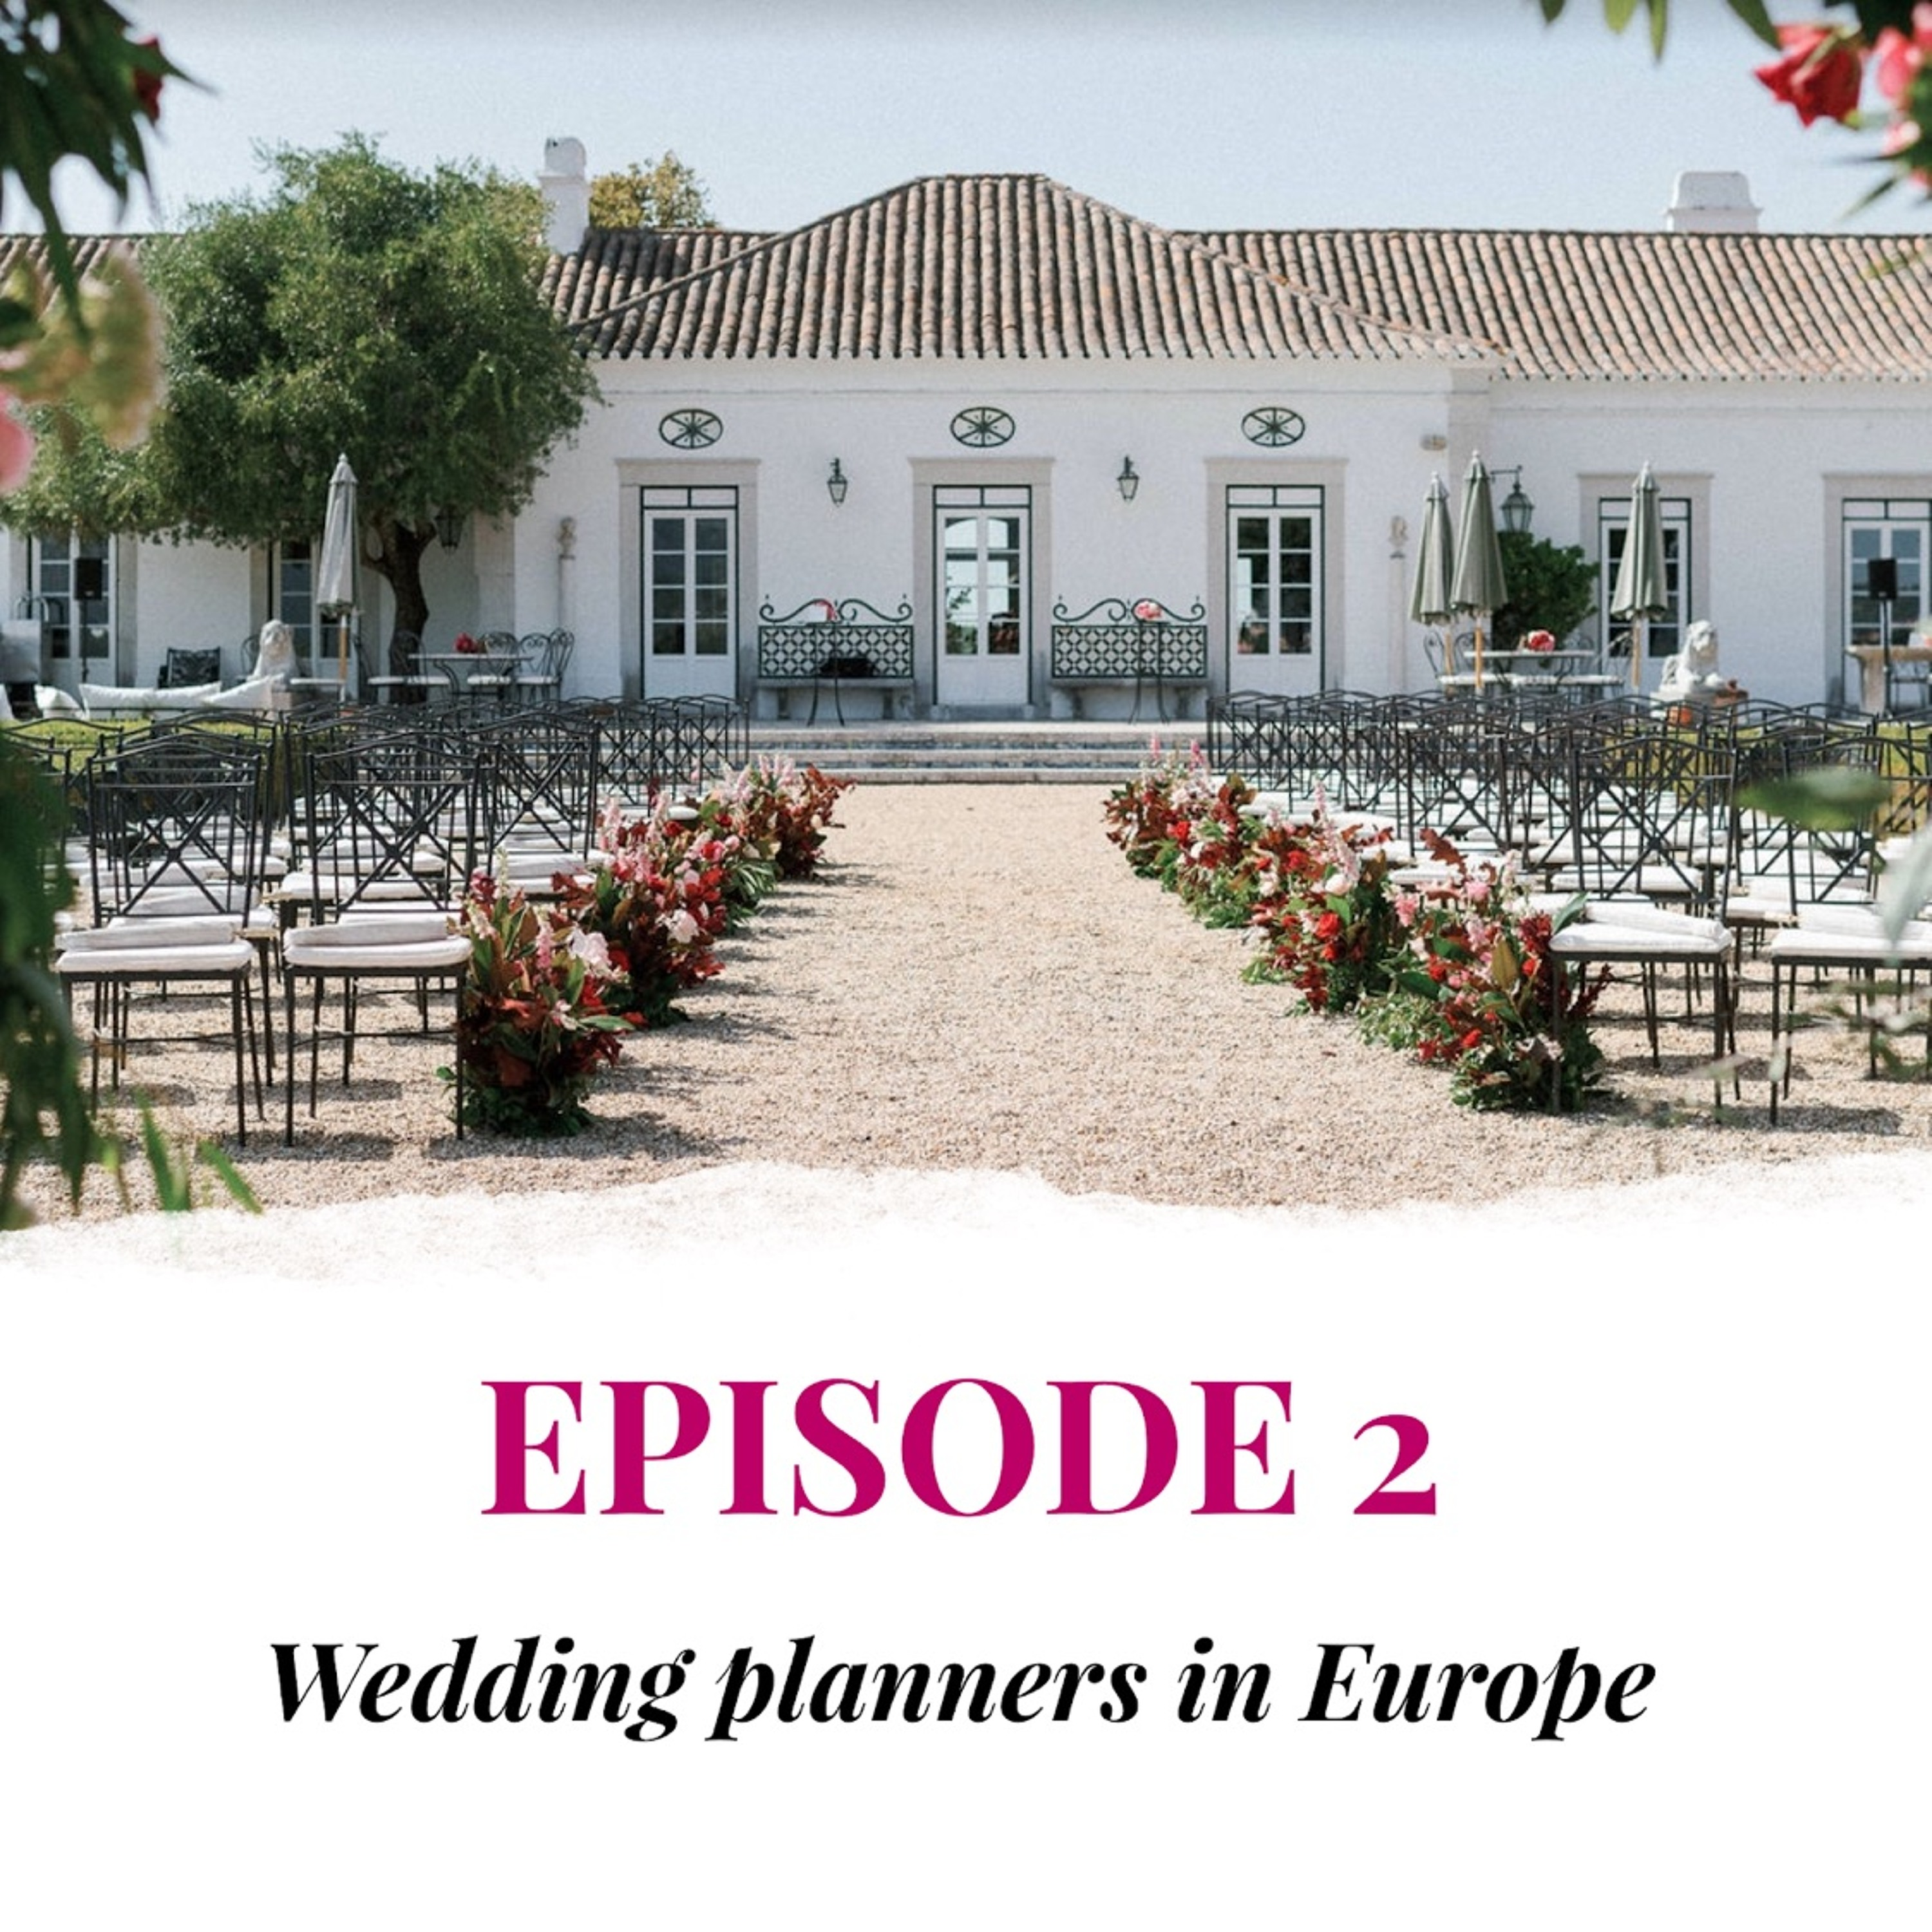 EPISODE 2 Wedding planners in Europe (prices and conditions)